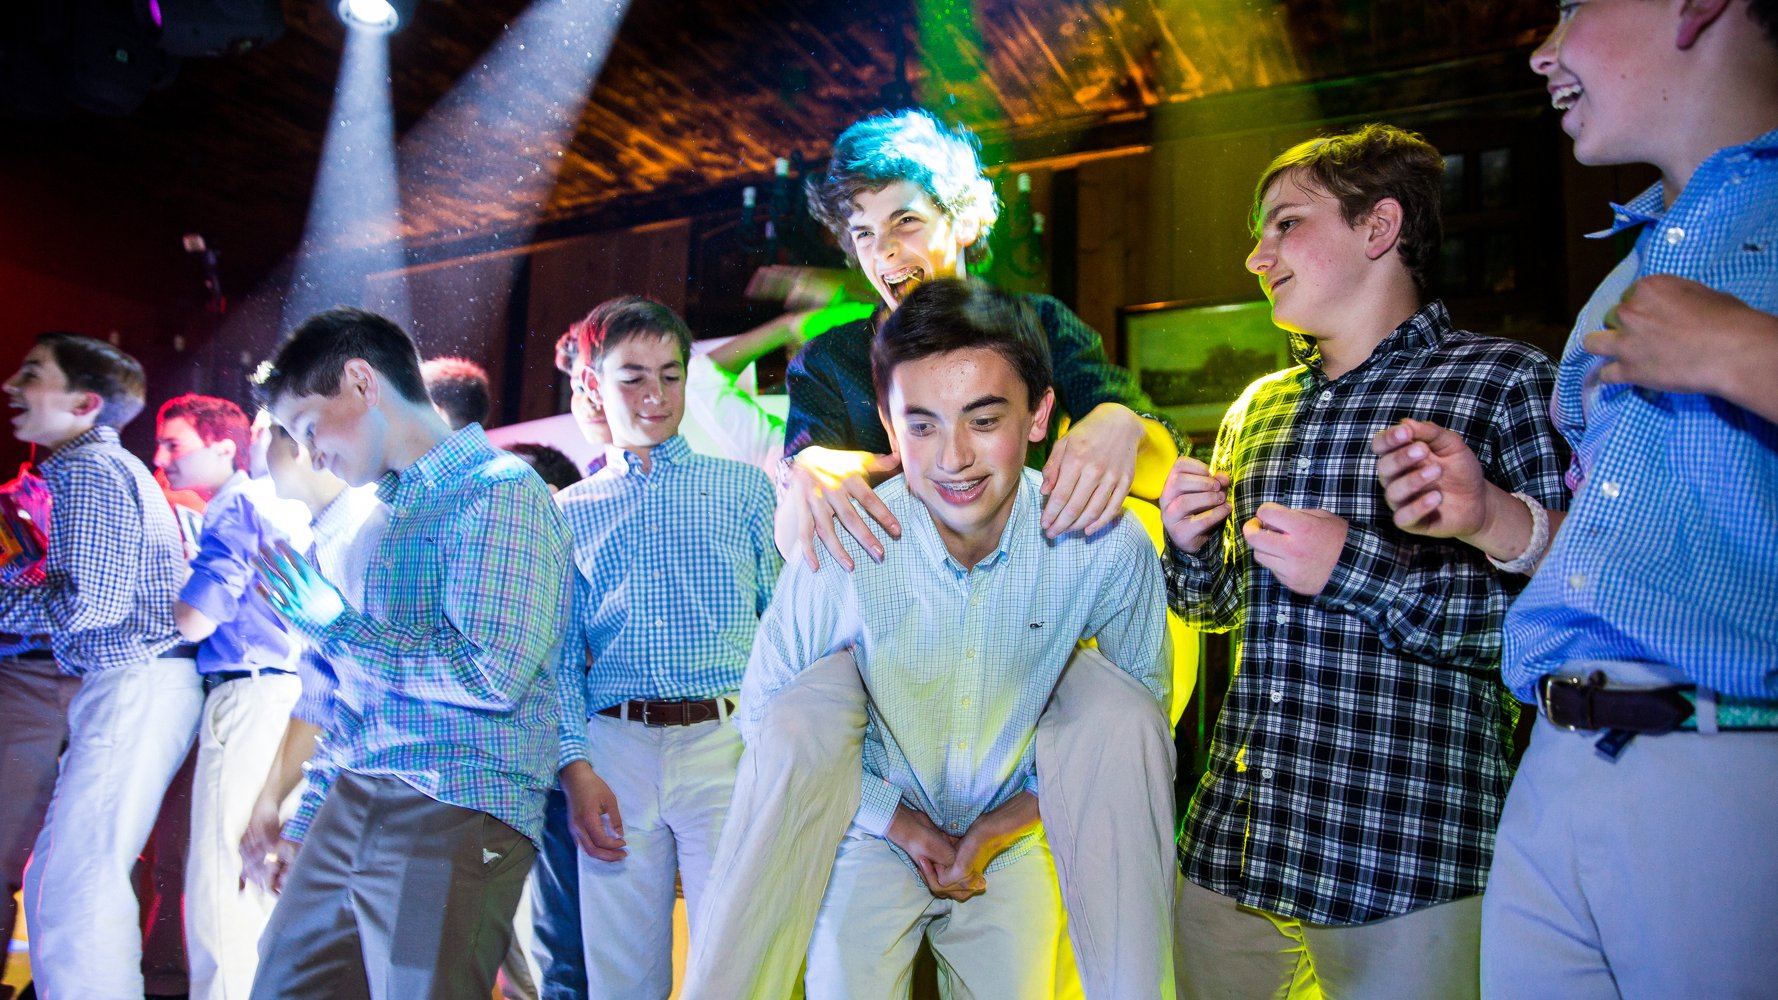 Bar Mitzvah kids dancing